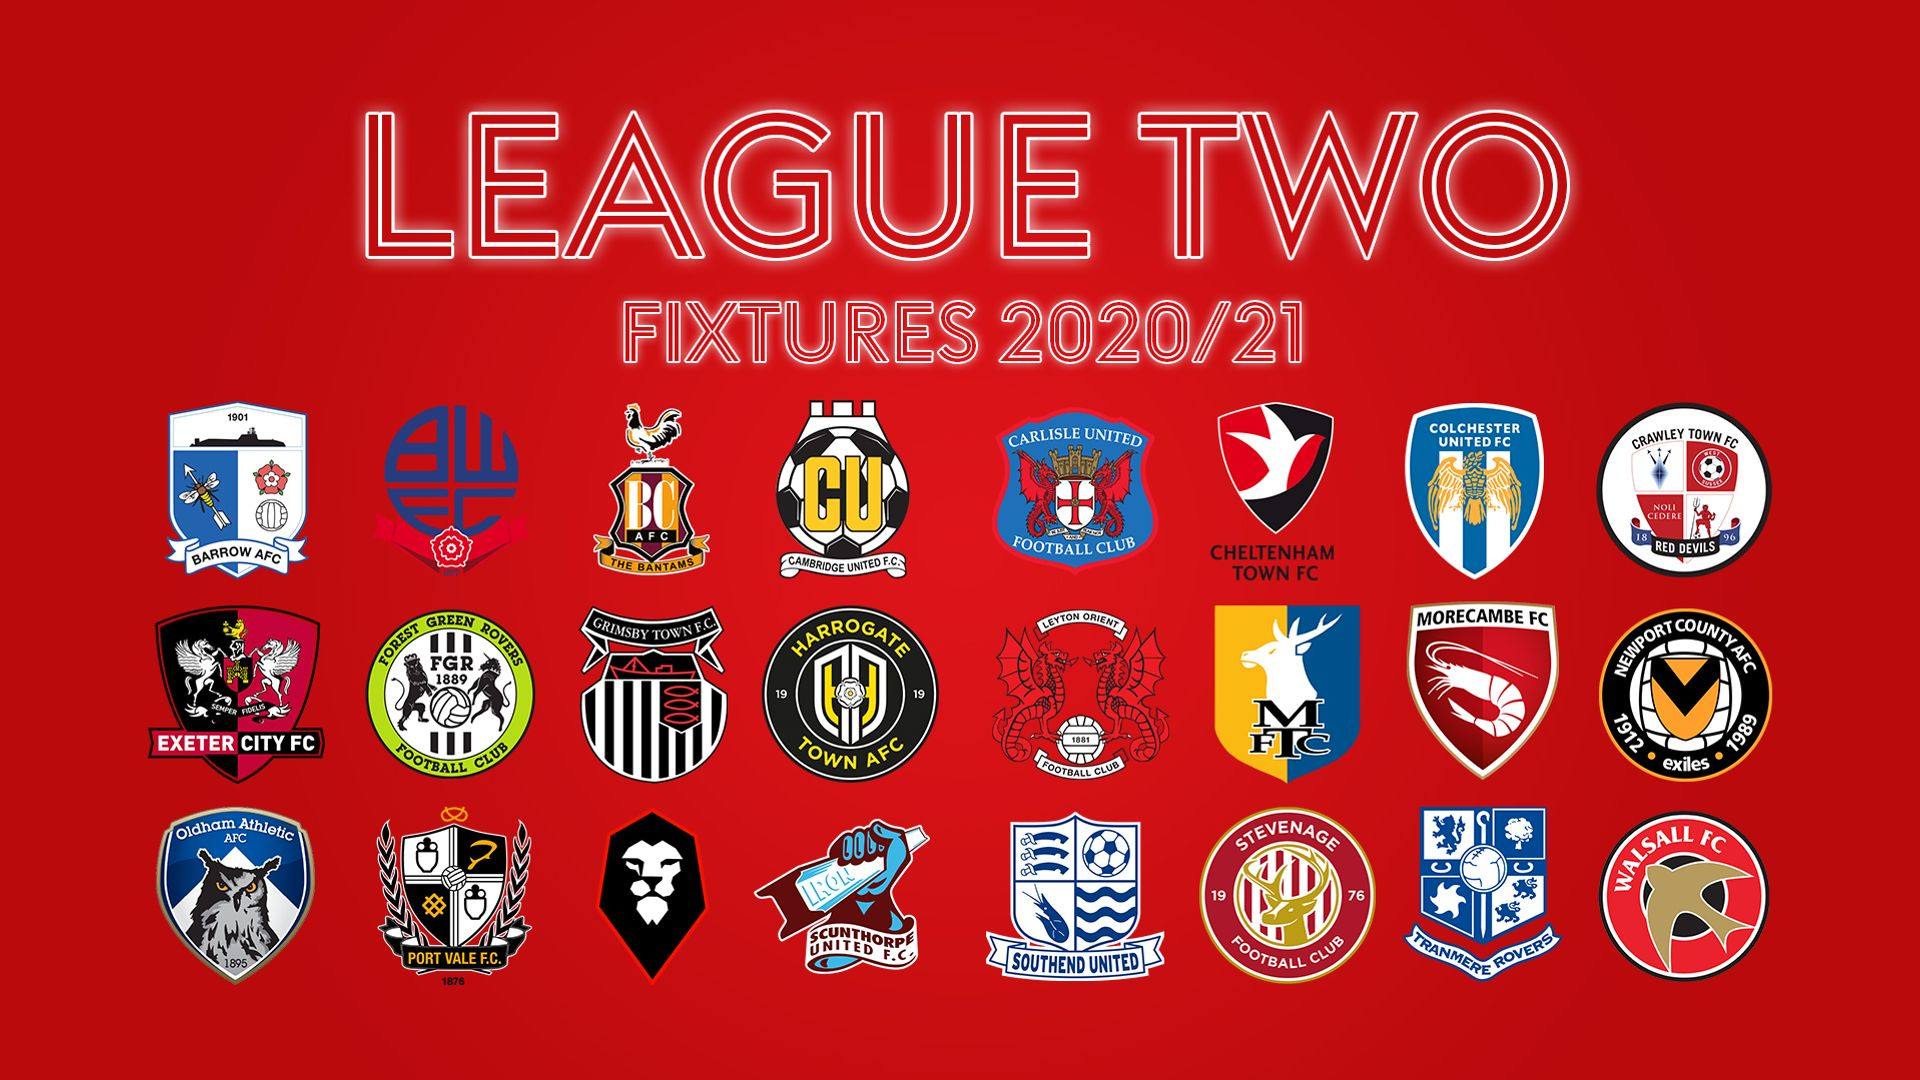 League Two fixtures 2020/21